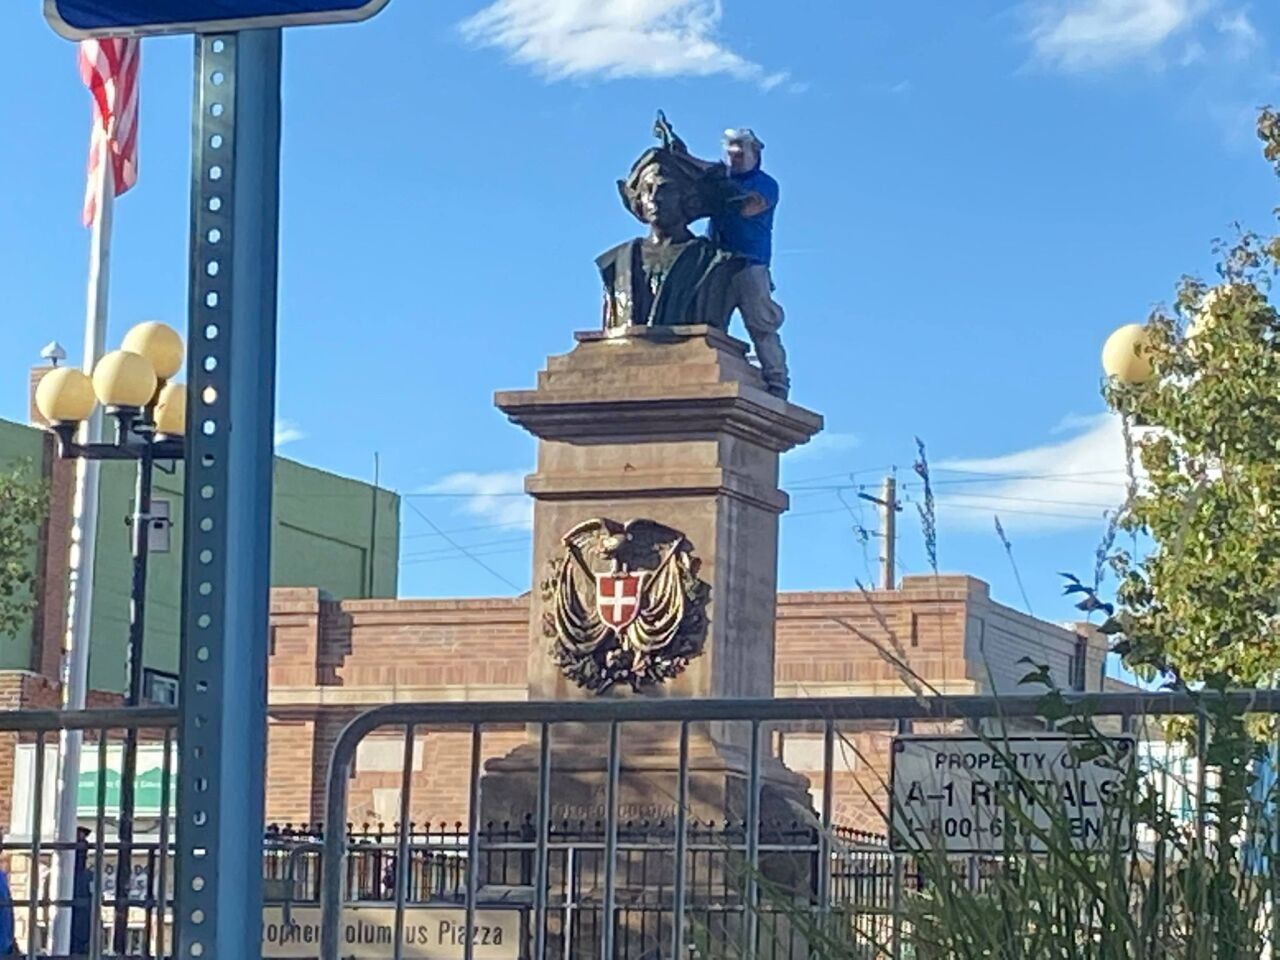 Pressure cleaners were working on removing the last remnants of paint on the Christopher Columbus statue in Pueblo late Sunday morning